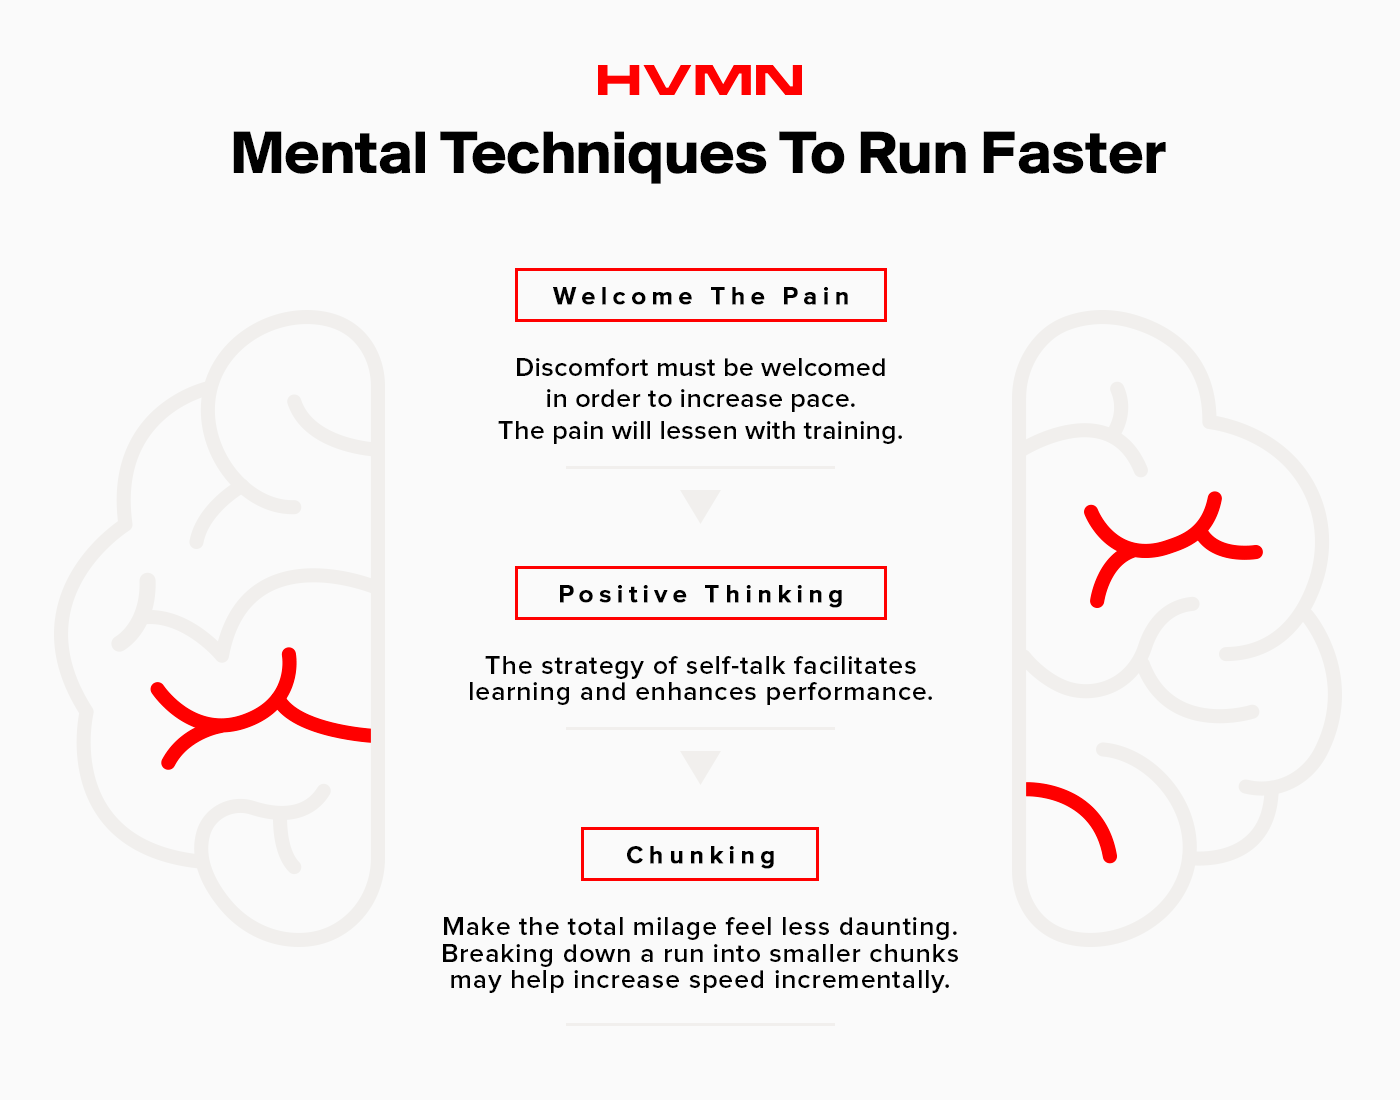 an illustration of a brain, split in the middle with the mental techniques for how to run faster